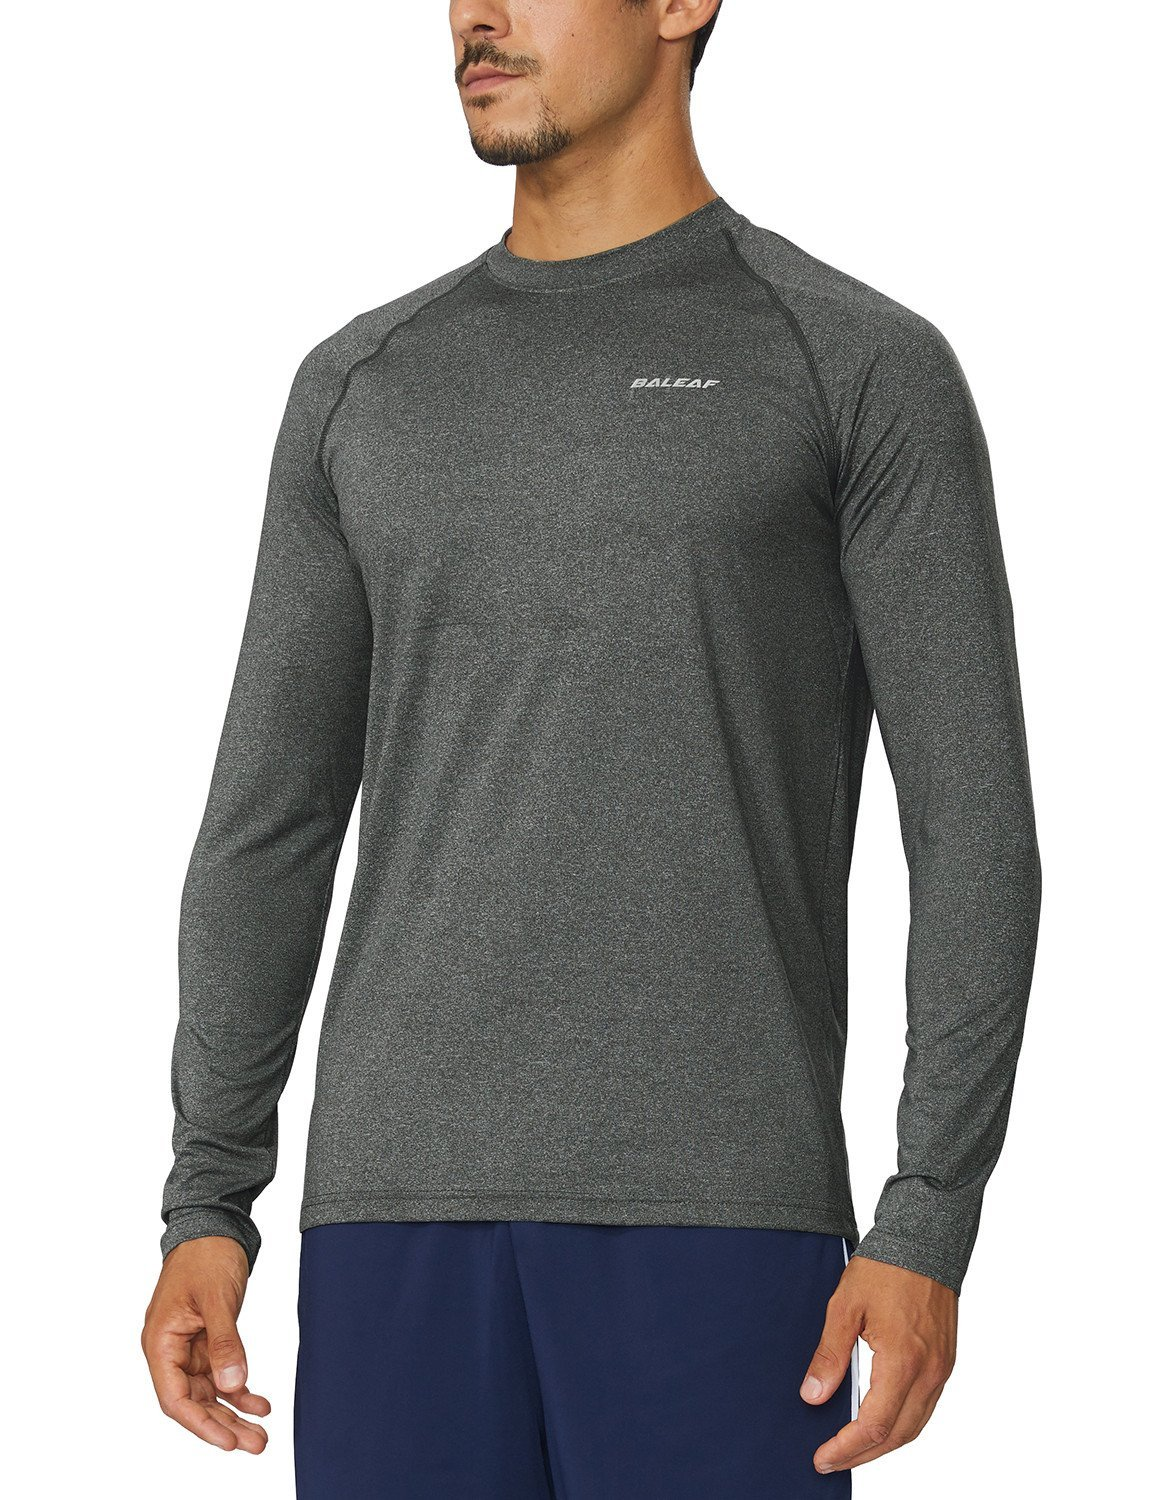 Baleaf Men's Cool Running Workout Long Sleeve T-Shirt Grey Heather Size XXXL by Baleaf